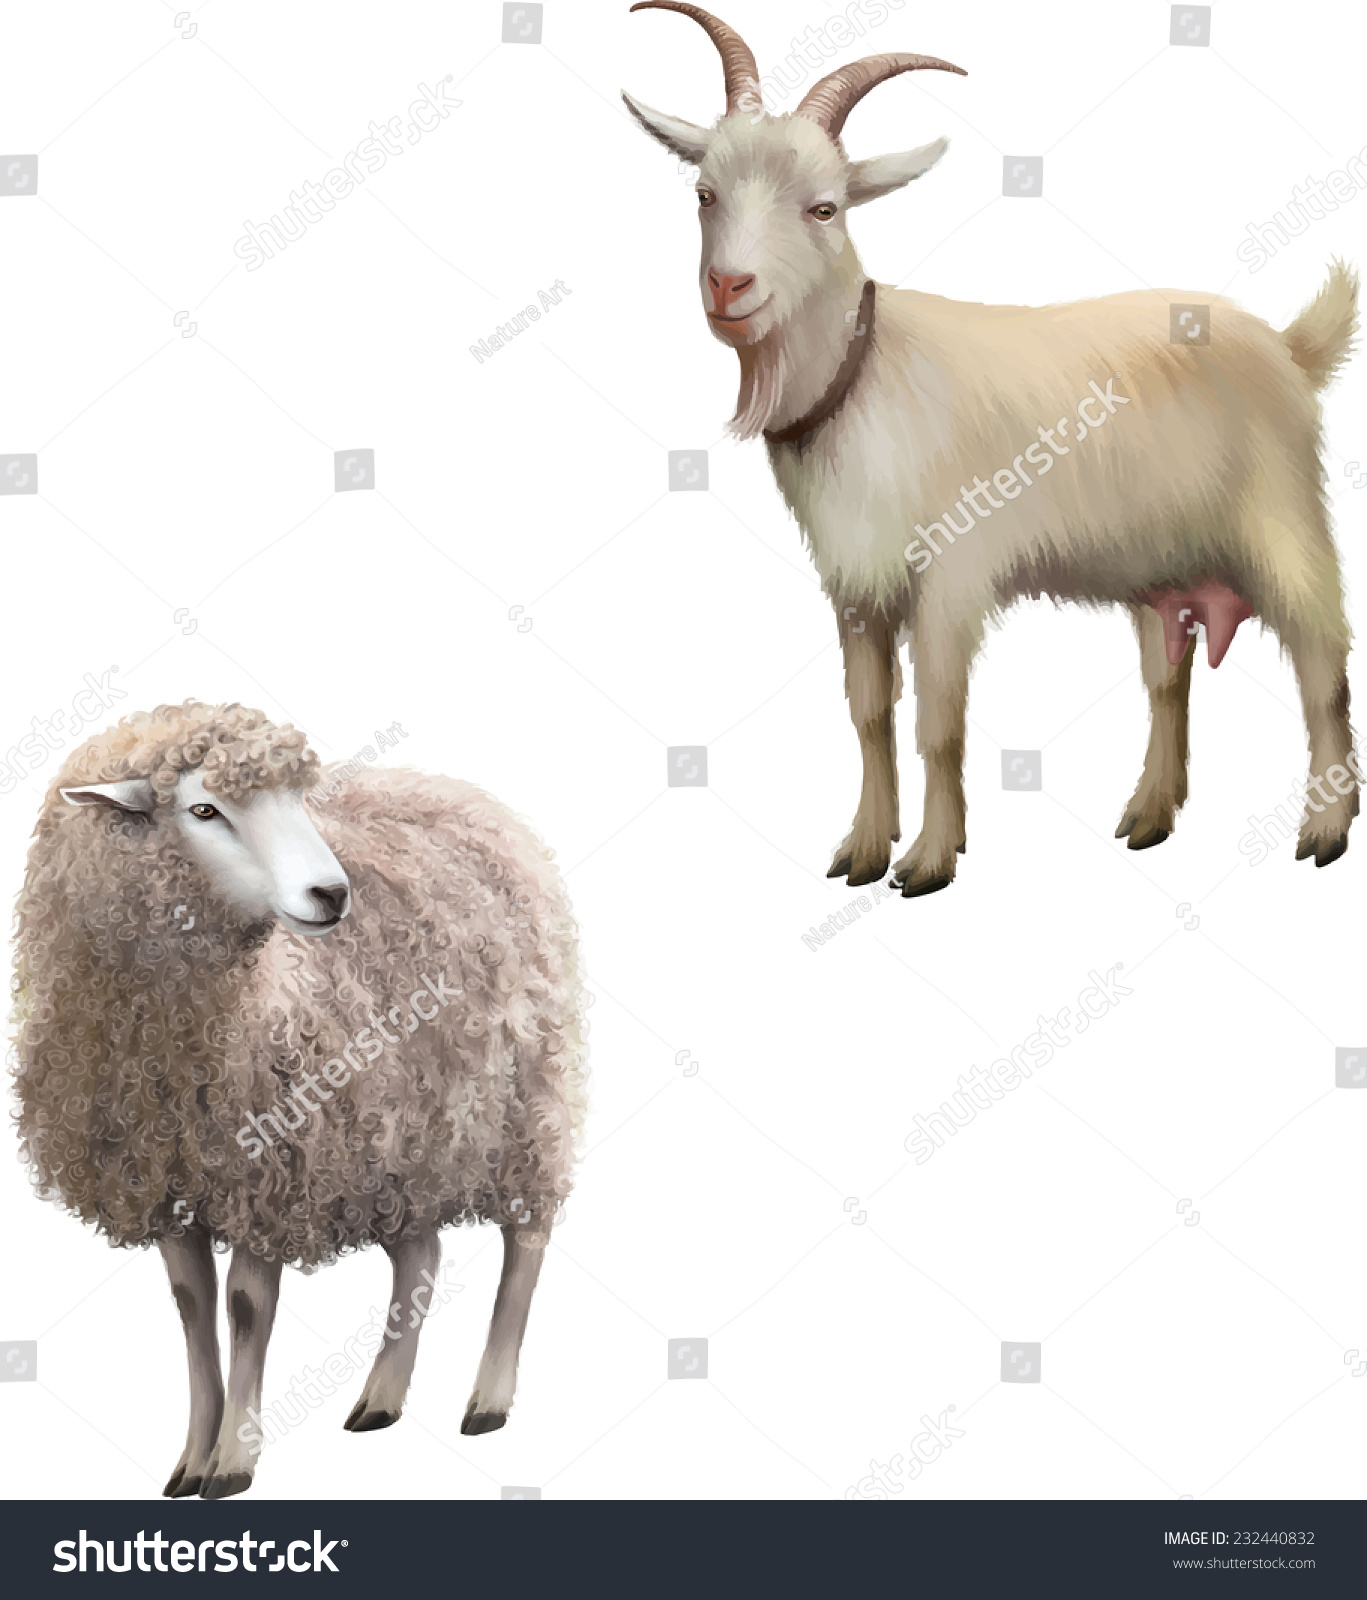 Vector Illustration Of Front View Of A Sheep Looking Away